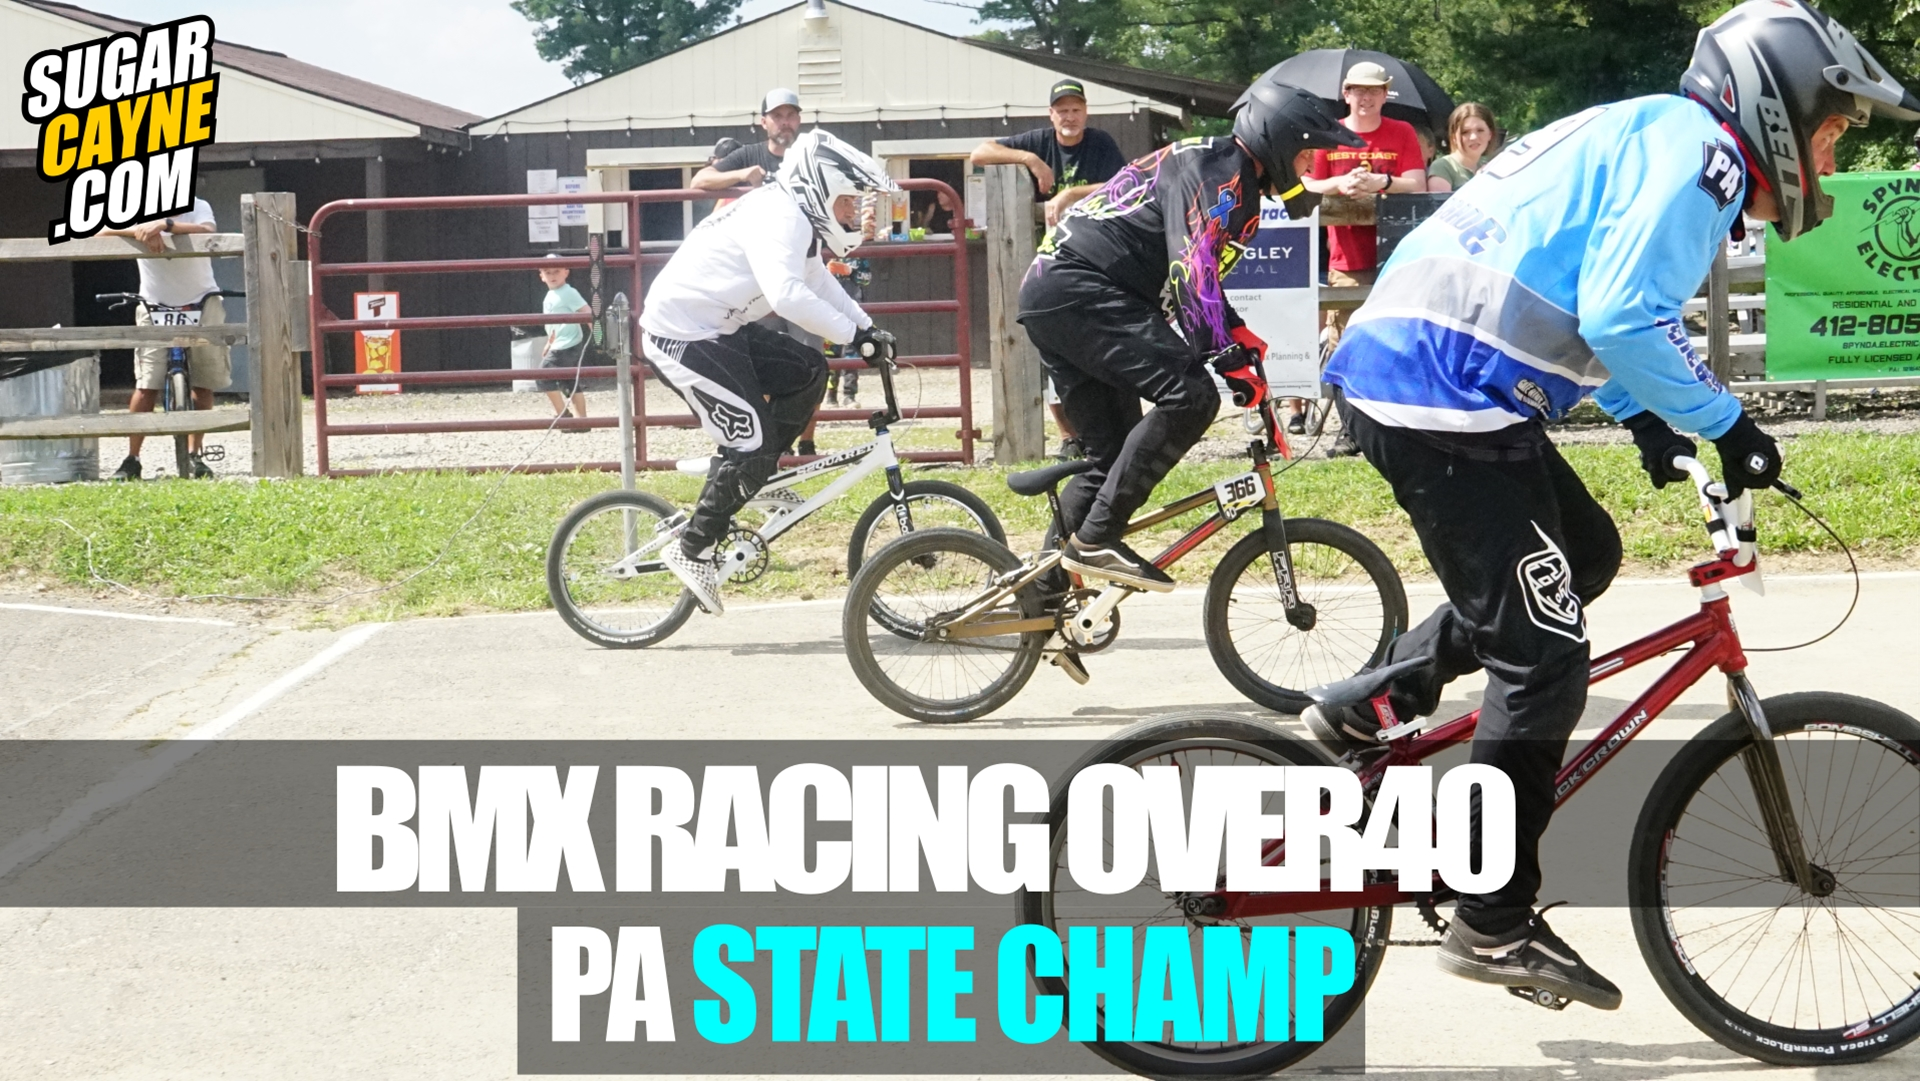 pa state championship, over 40